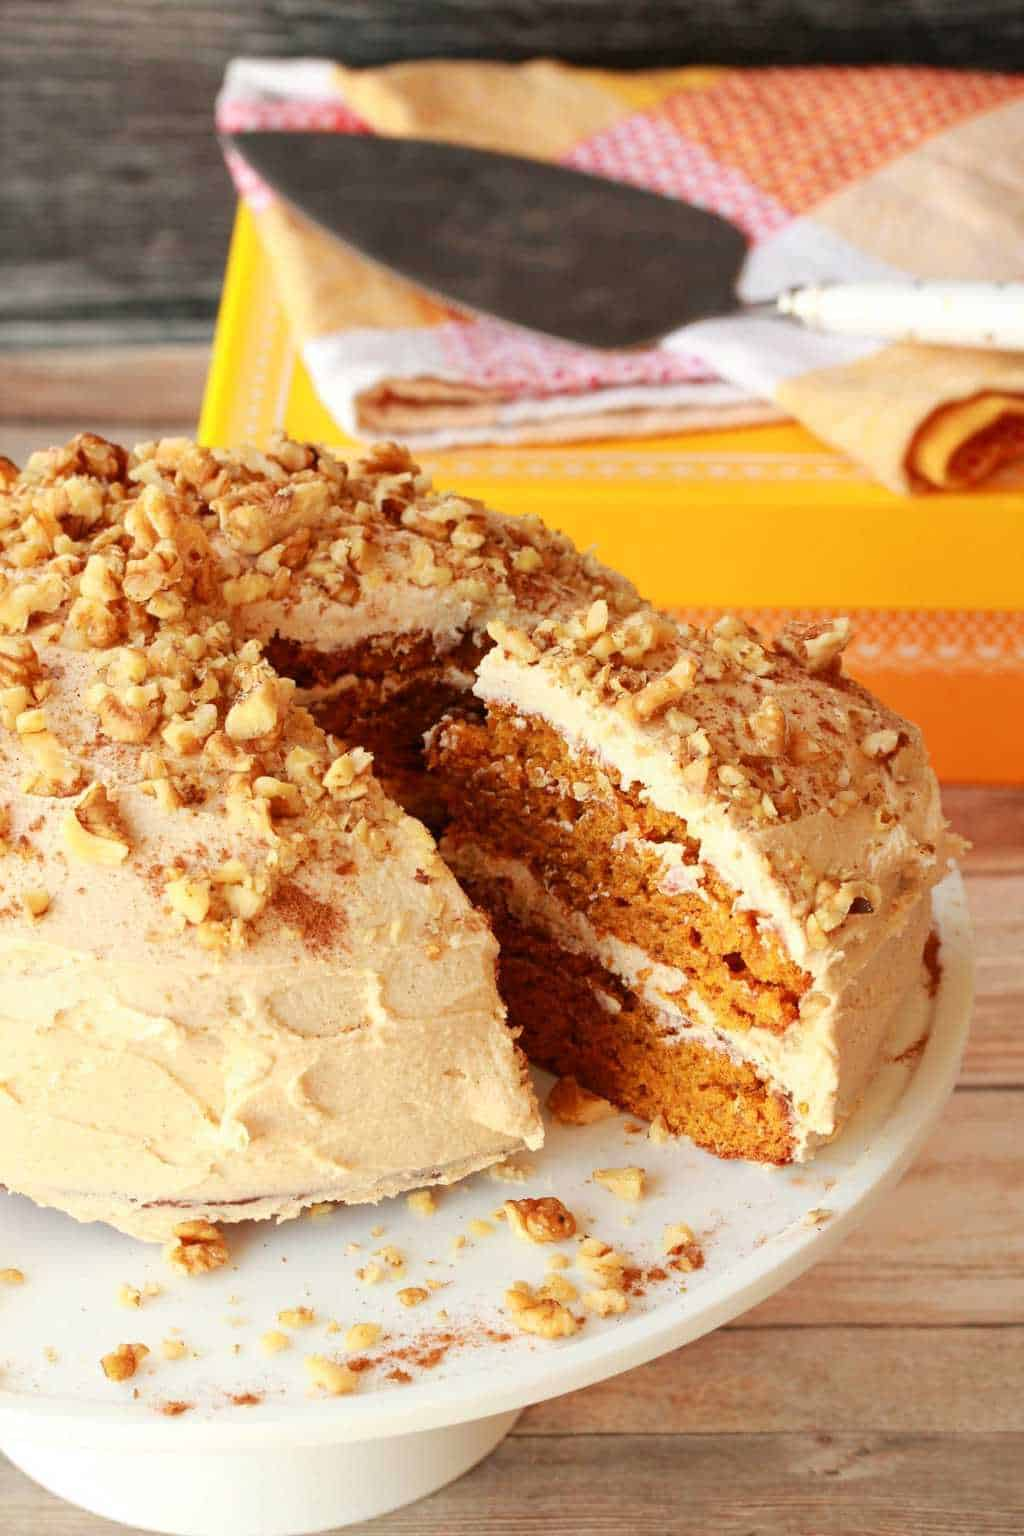 Vegan pumpkin cake topped with cinnamon buttercream and crushed walnuts on a white cake stand.